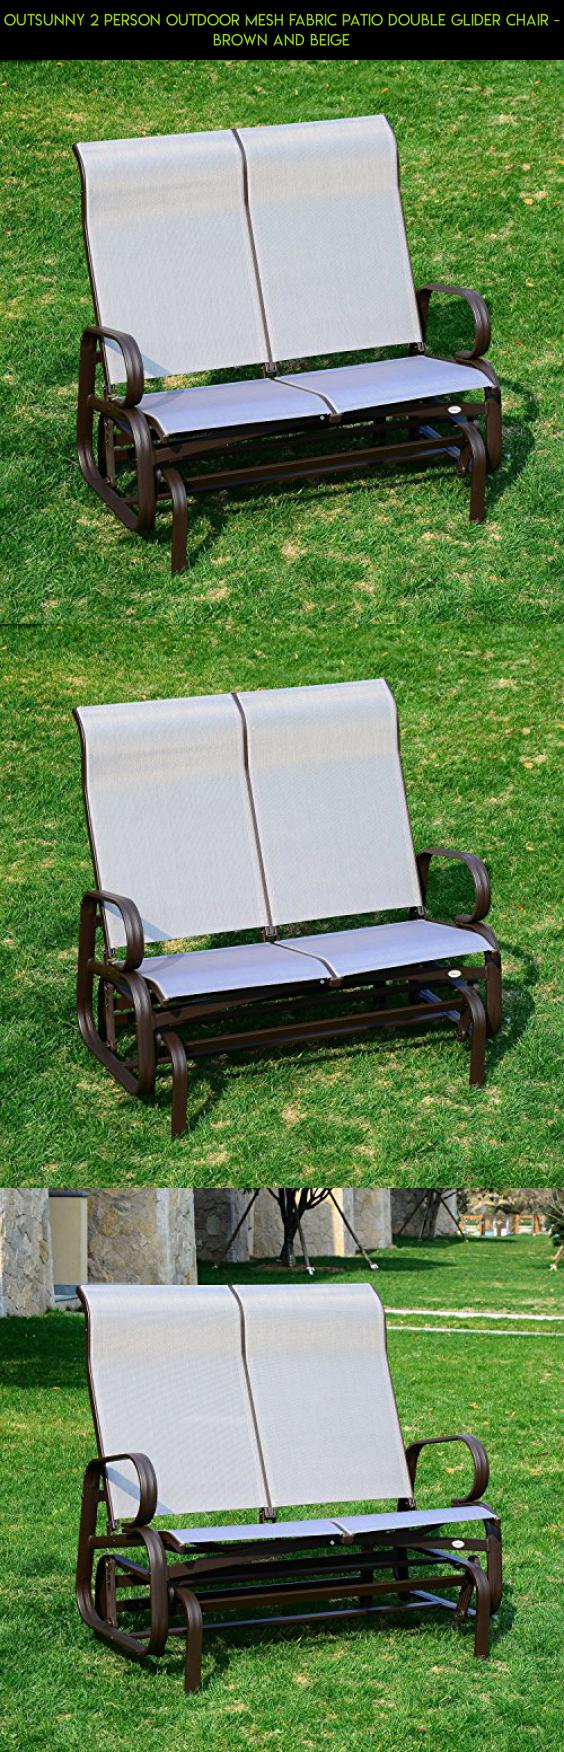 Outsunny 2 Person Outdoor Mesh Fabric Patio Double Glider Chair   Brown And  Beige #fpv